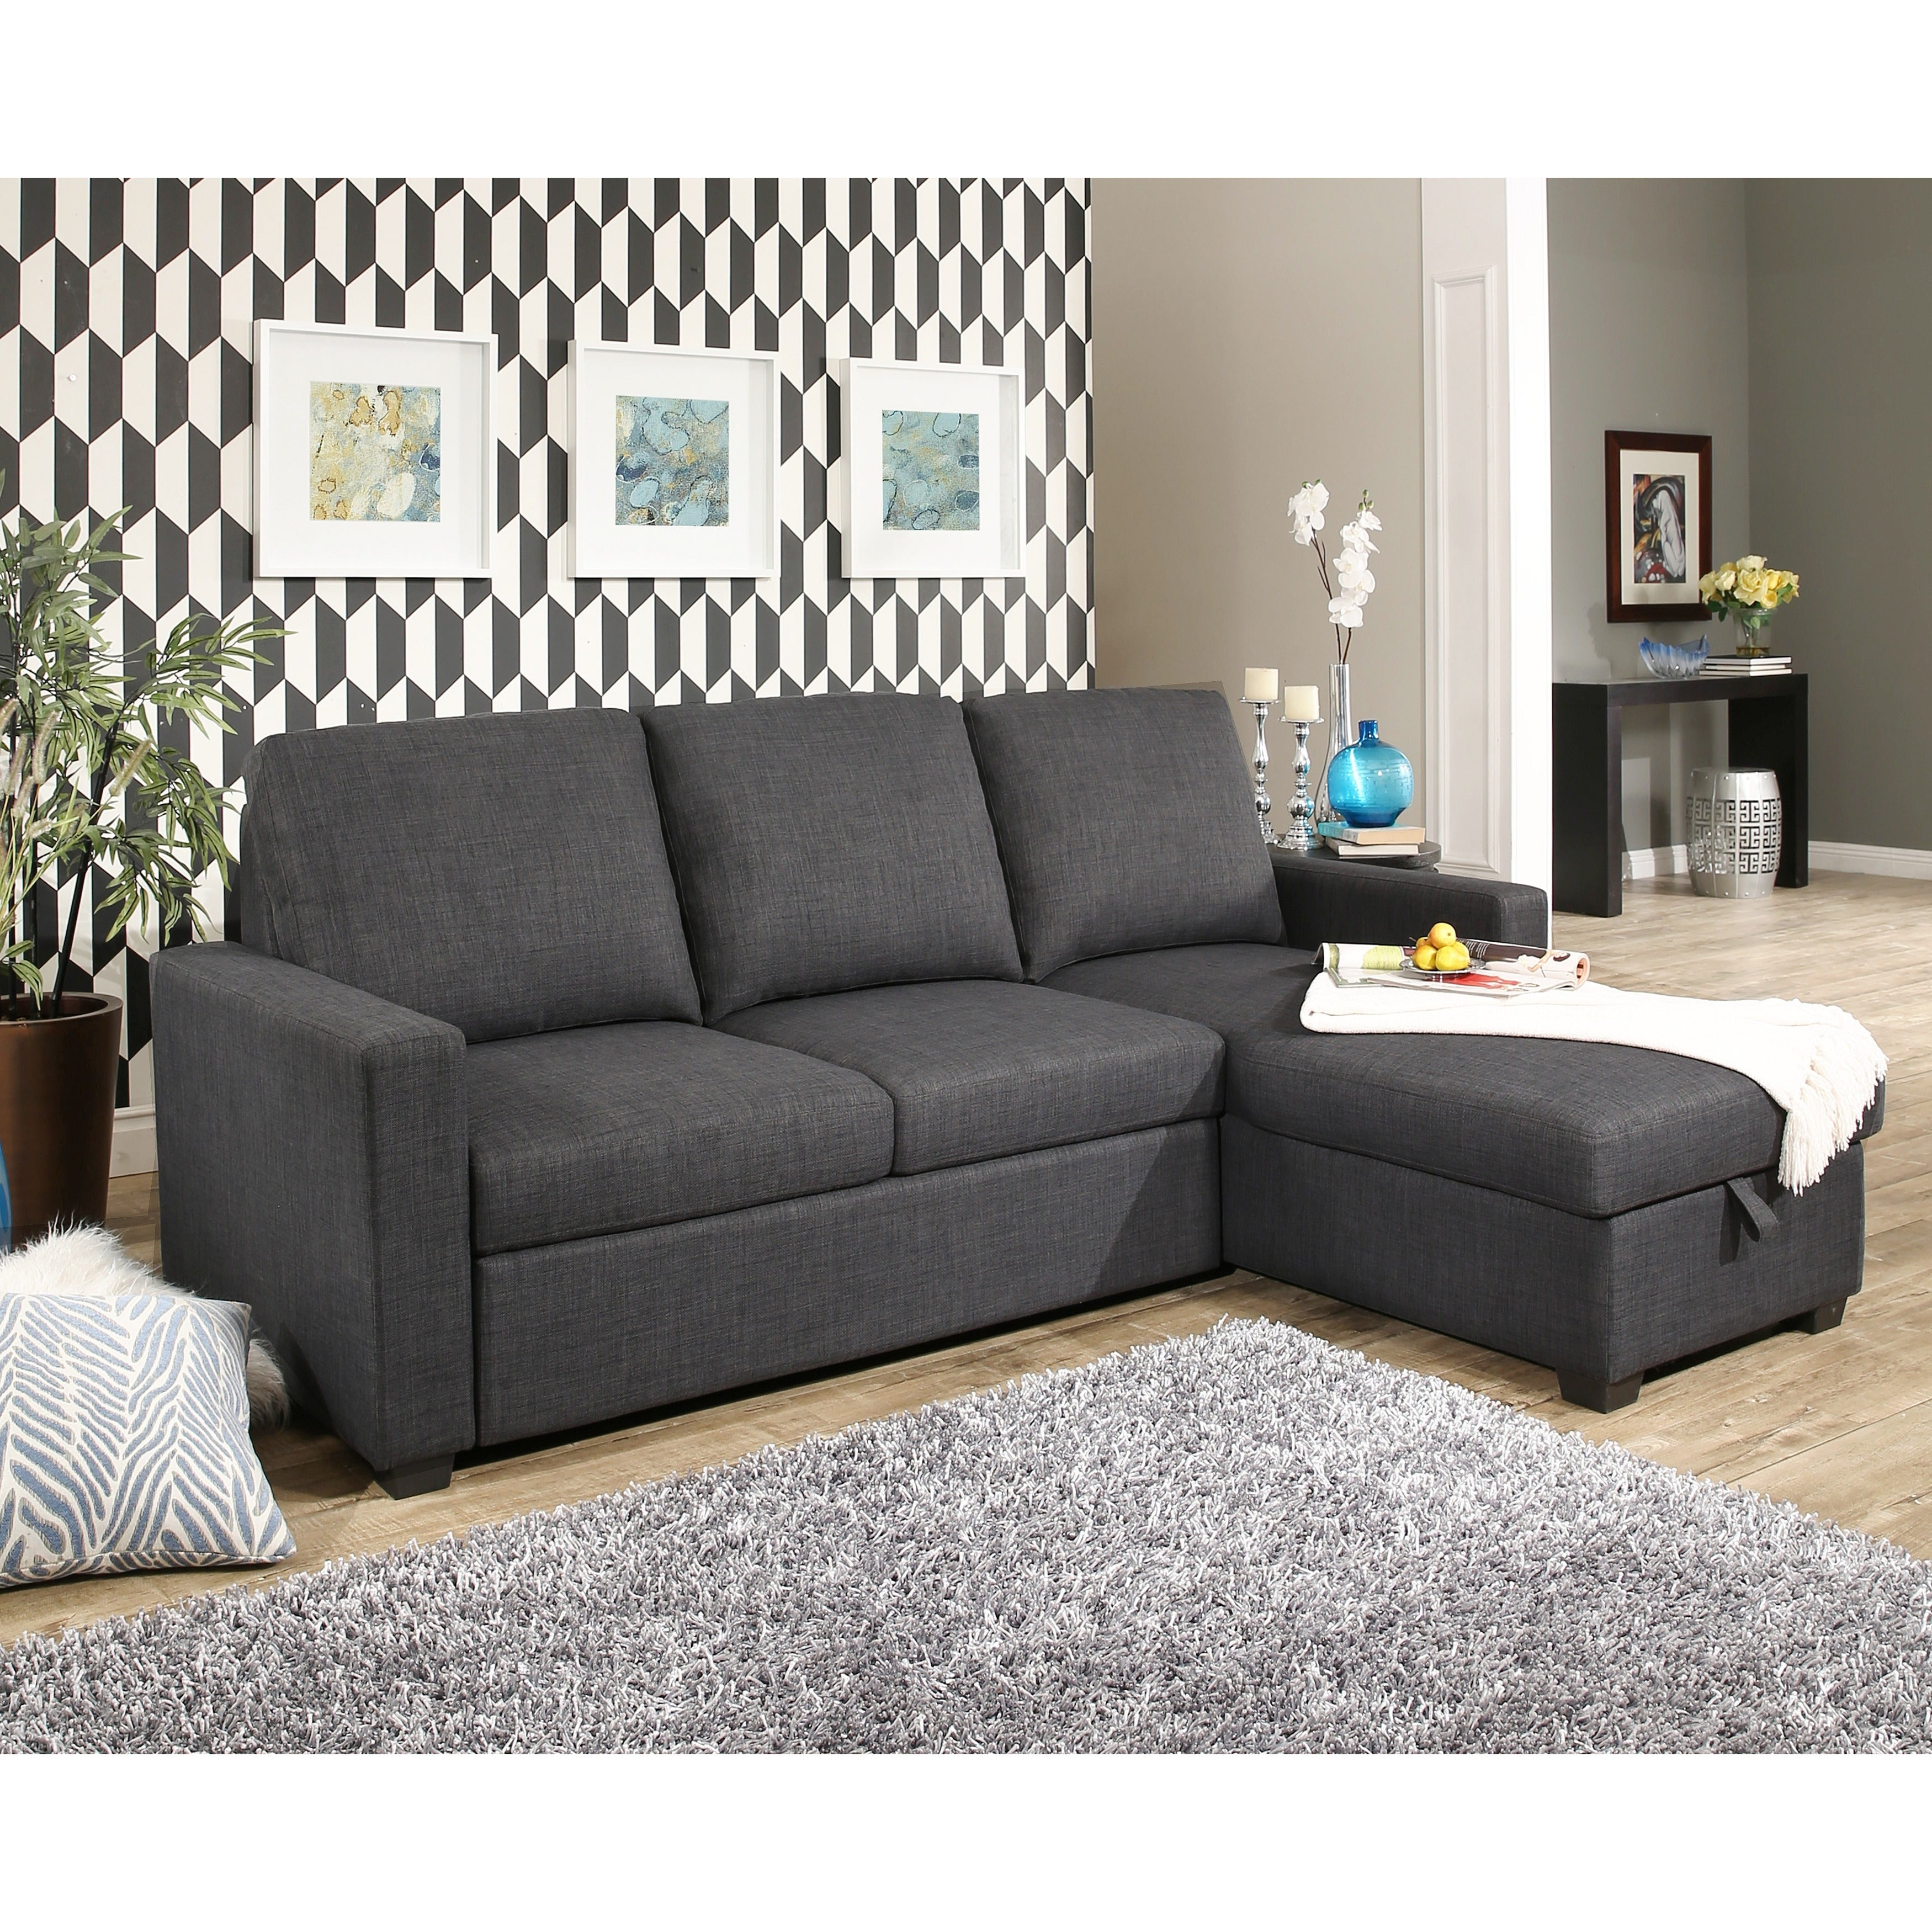 Chase Sofas Chaise Lounge Sofas Crate And Barrel Thesofa